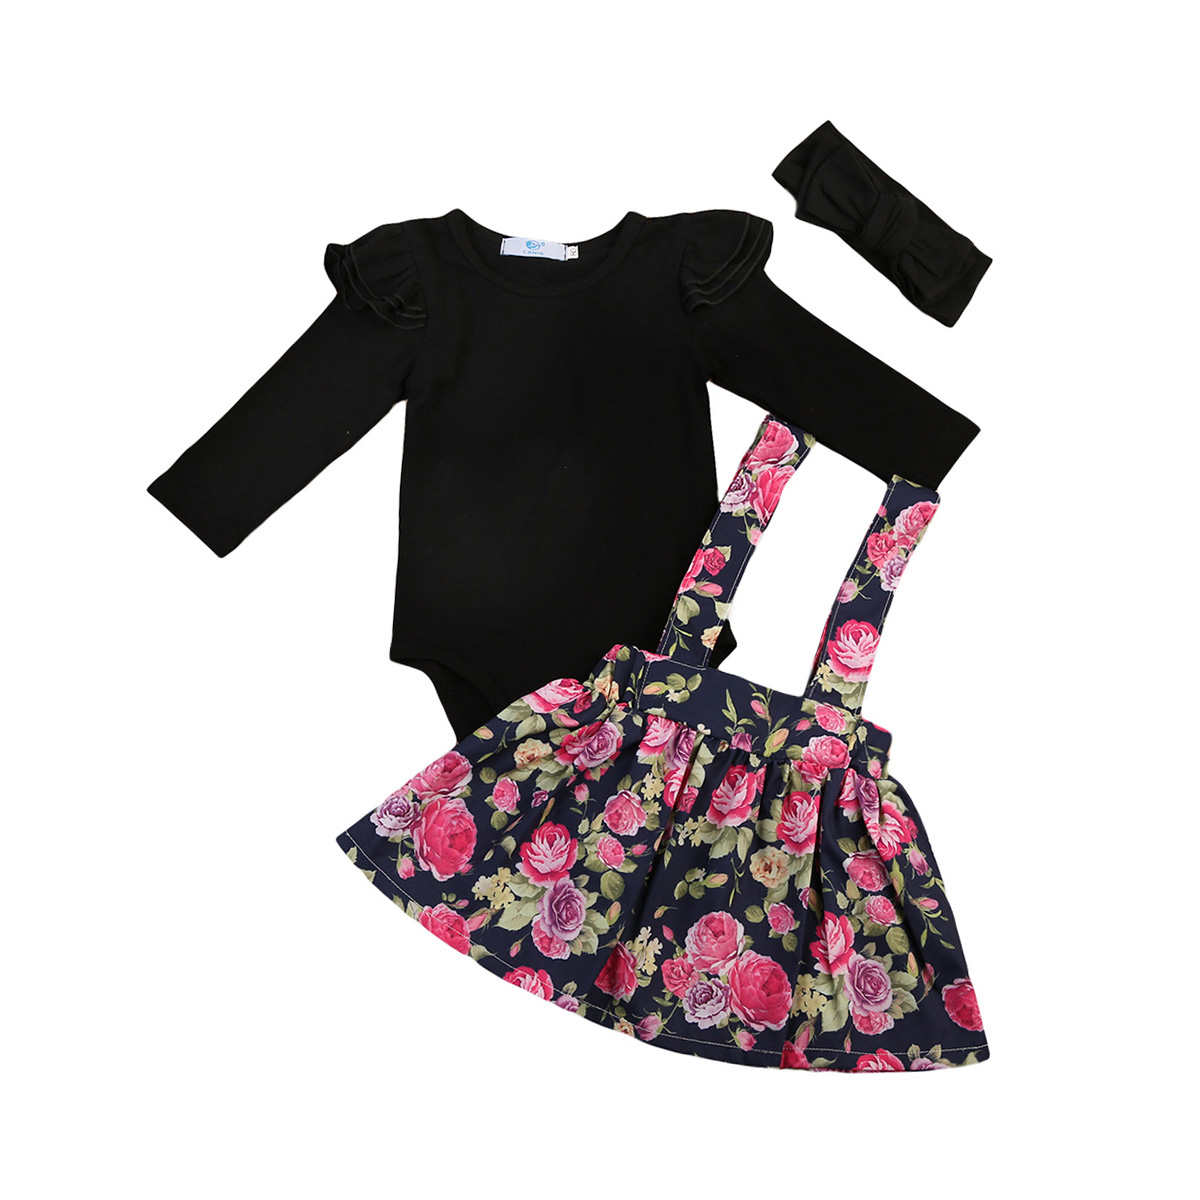 3Pcs Flower Girl Romper Infant Baby Tops Tutu Skirt Kids Outfit Set Toddler Children Girls Floral Skirts Solid Yop Clothing Set infant baby boy girl 2pcs clothes set kids short sleeve you serious clark letters romper tops car print pants 2pcs outfit set